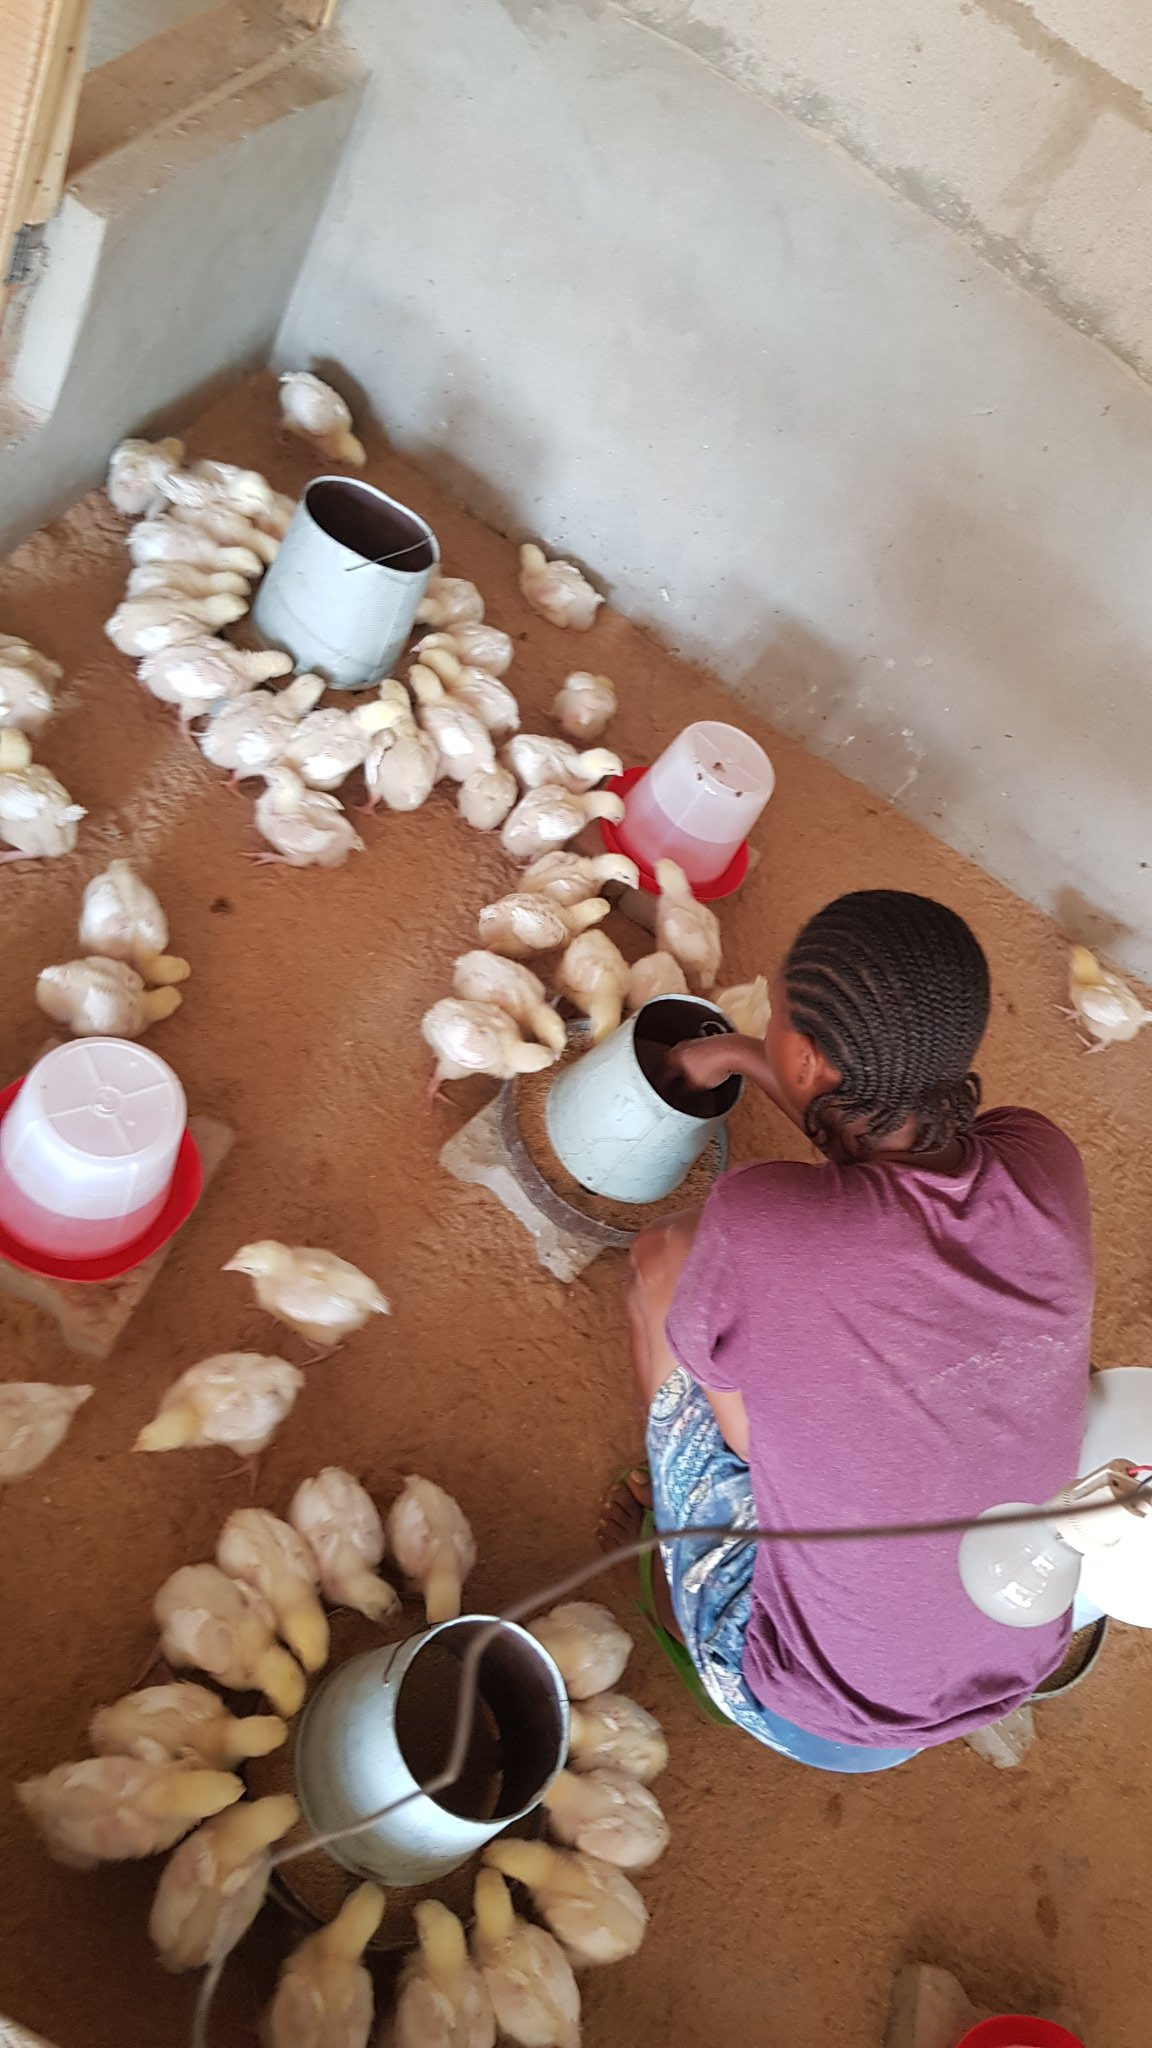 , Nigerian lady builds successful poultry farm, shares secrets on social media, Effiezy - Top Nigerian News & Entertainment Website